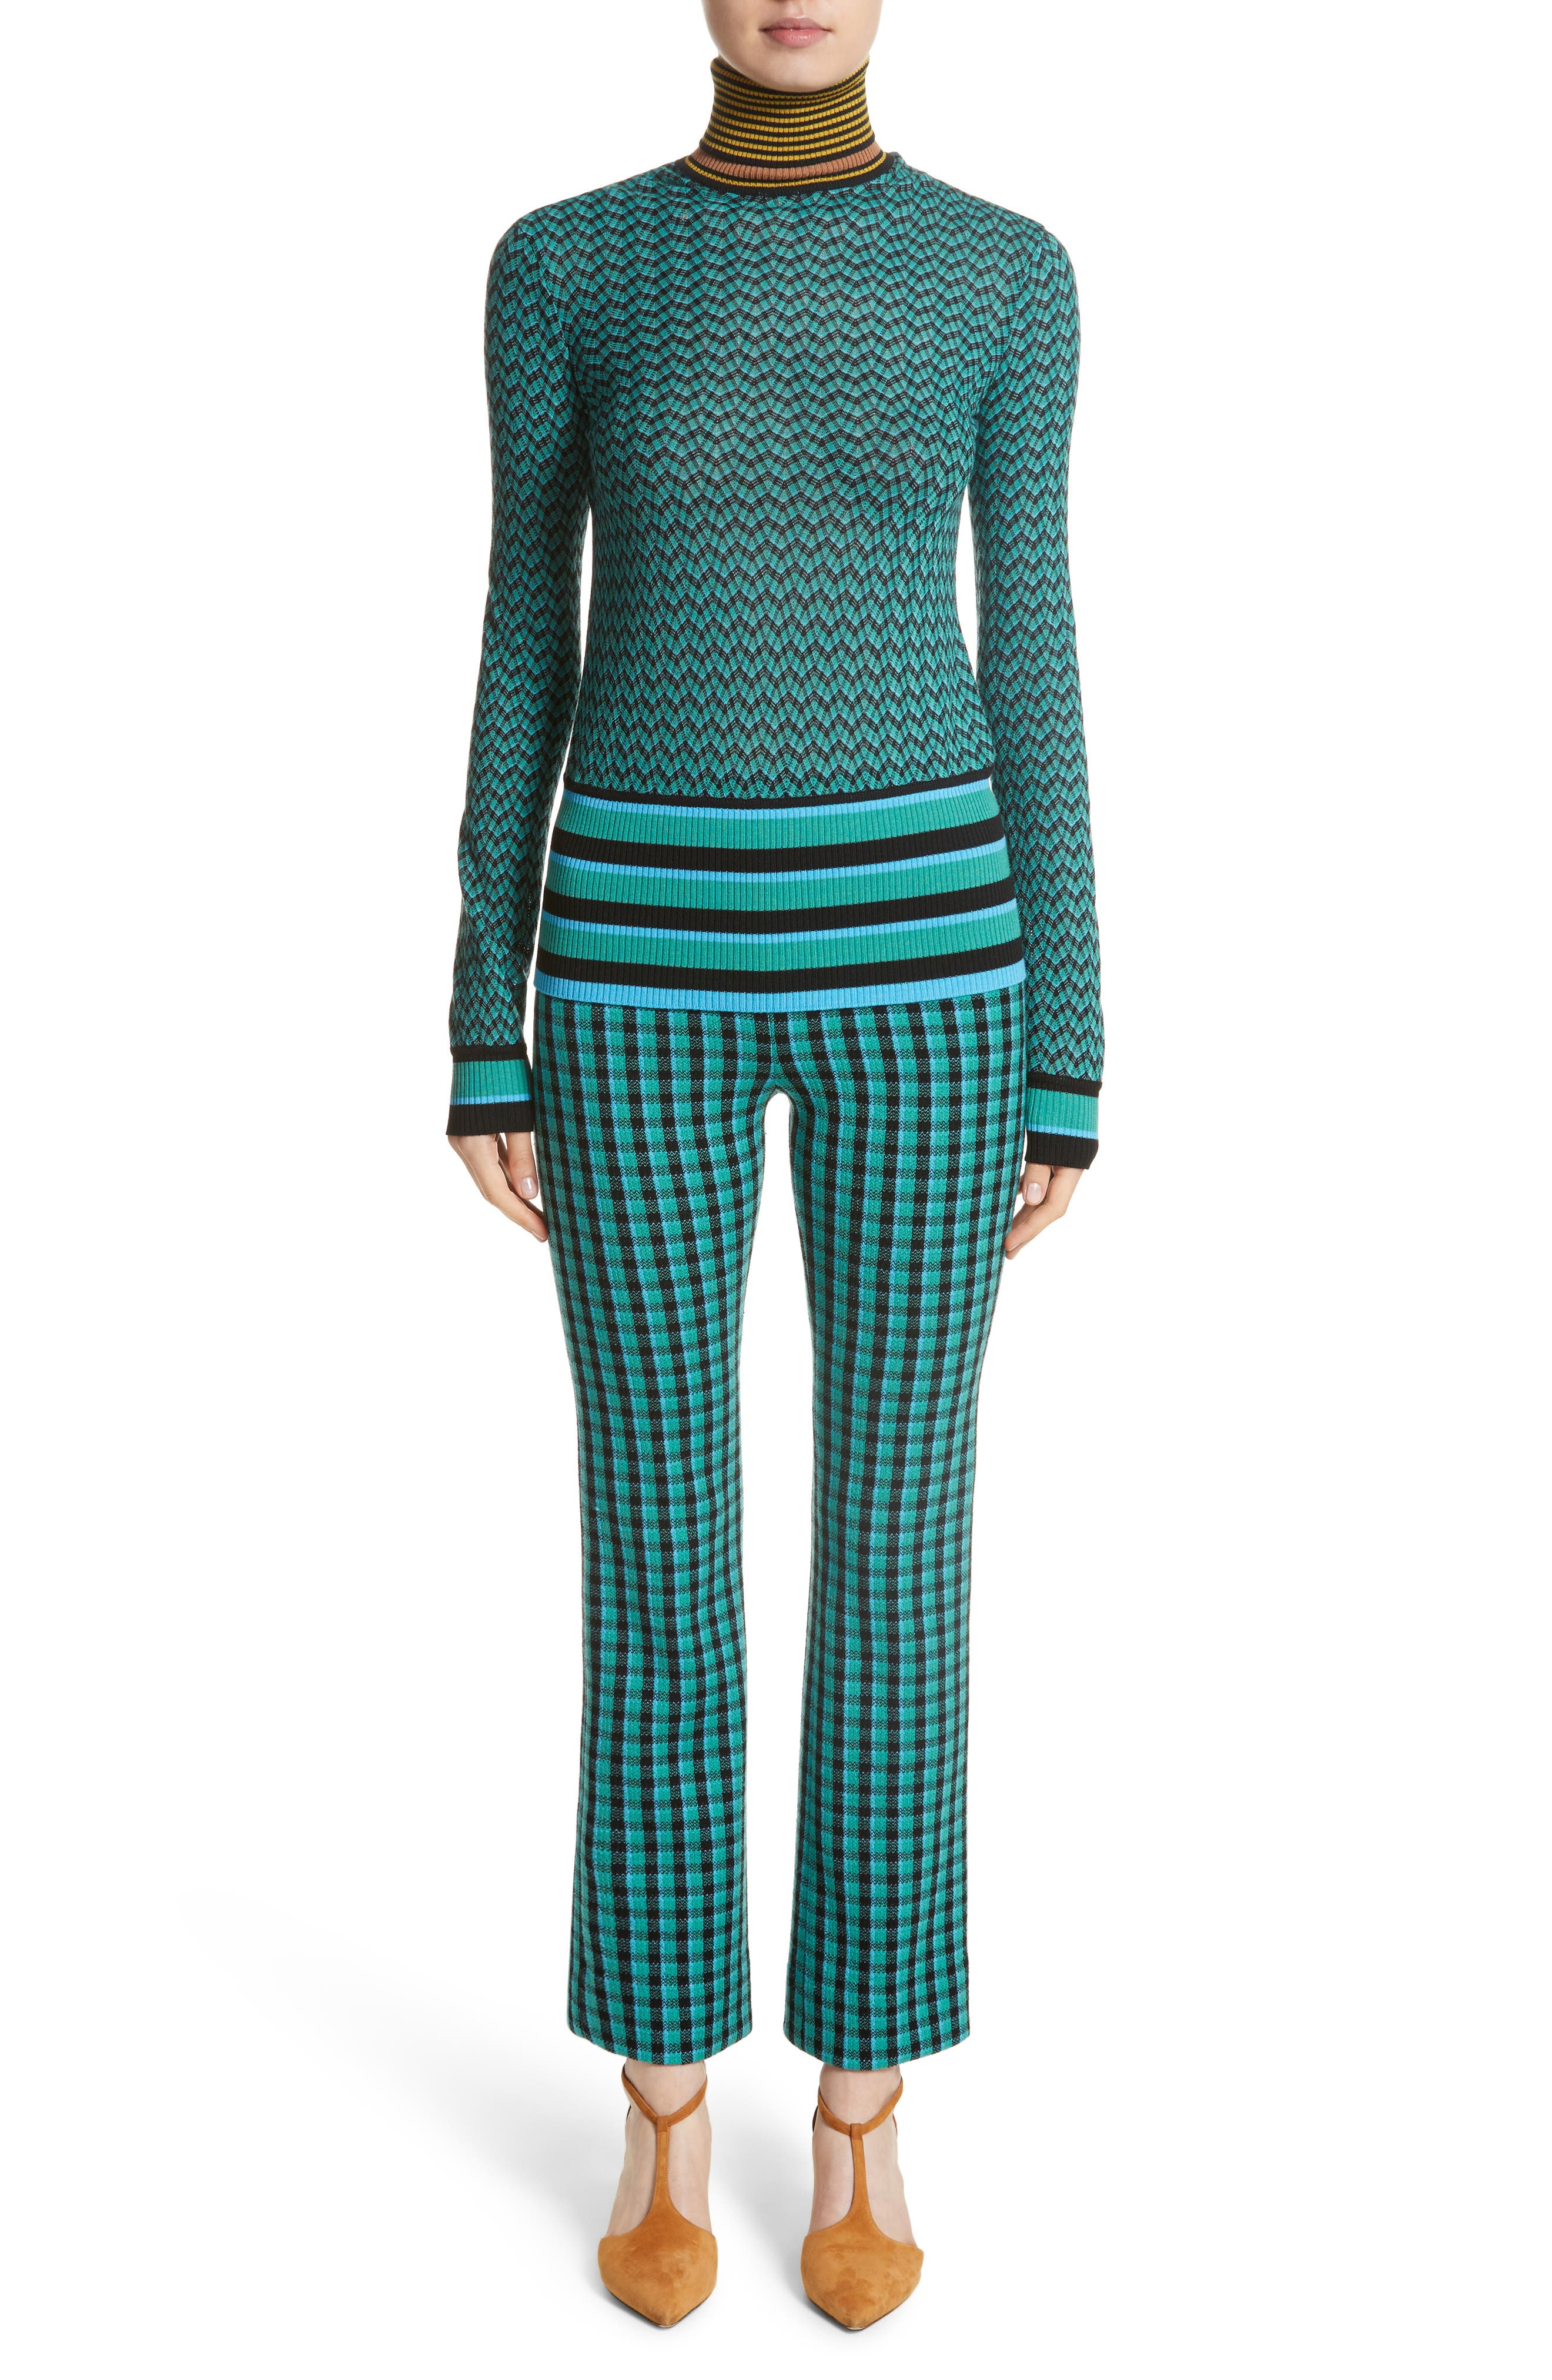 Plaid Stretch Wool Knit Pants,                             Alternate thumbnail 7, color,                             Green/ Blue